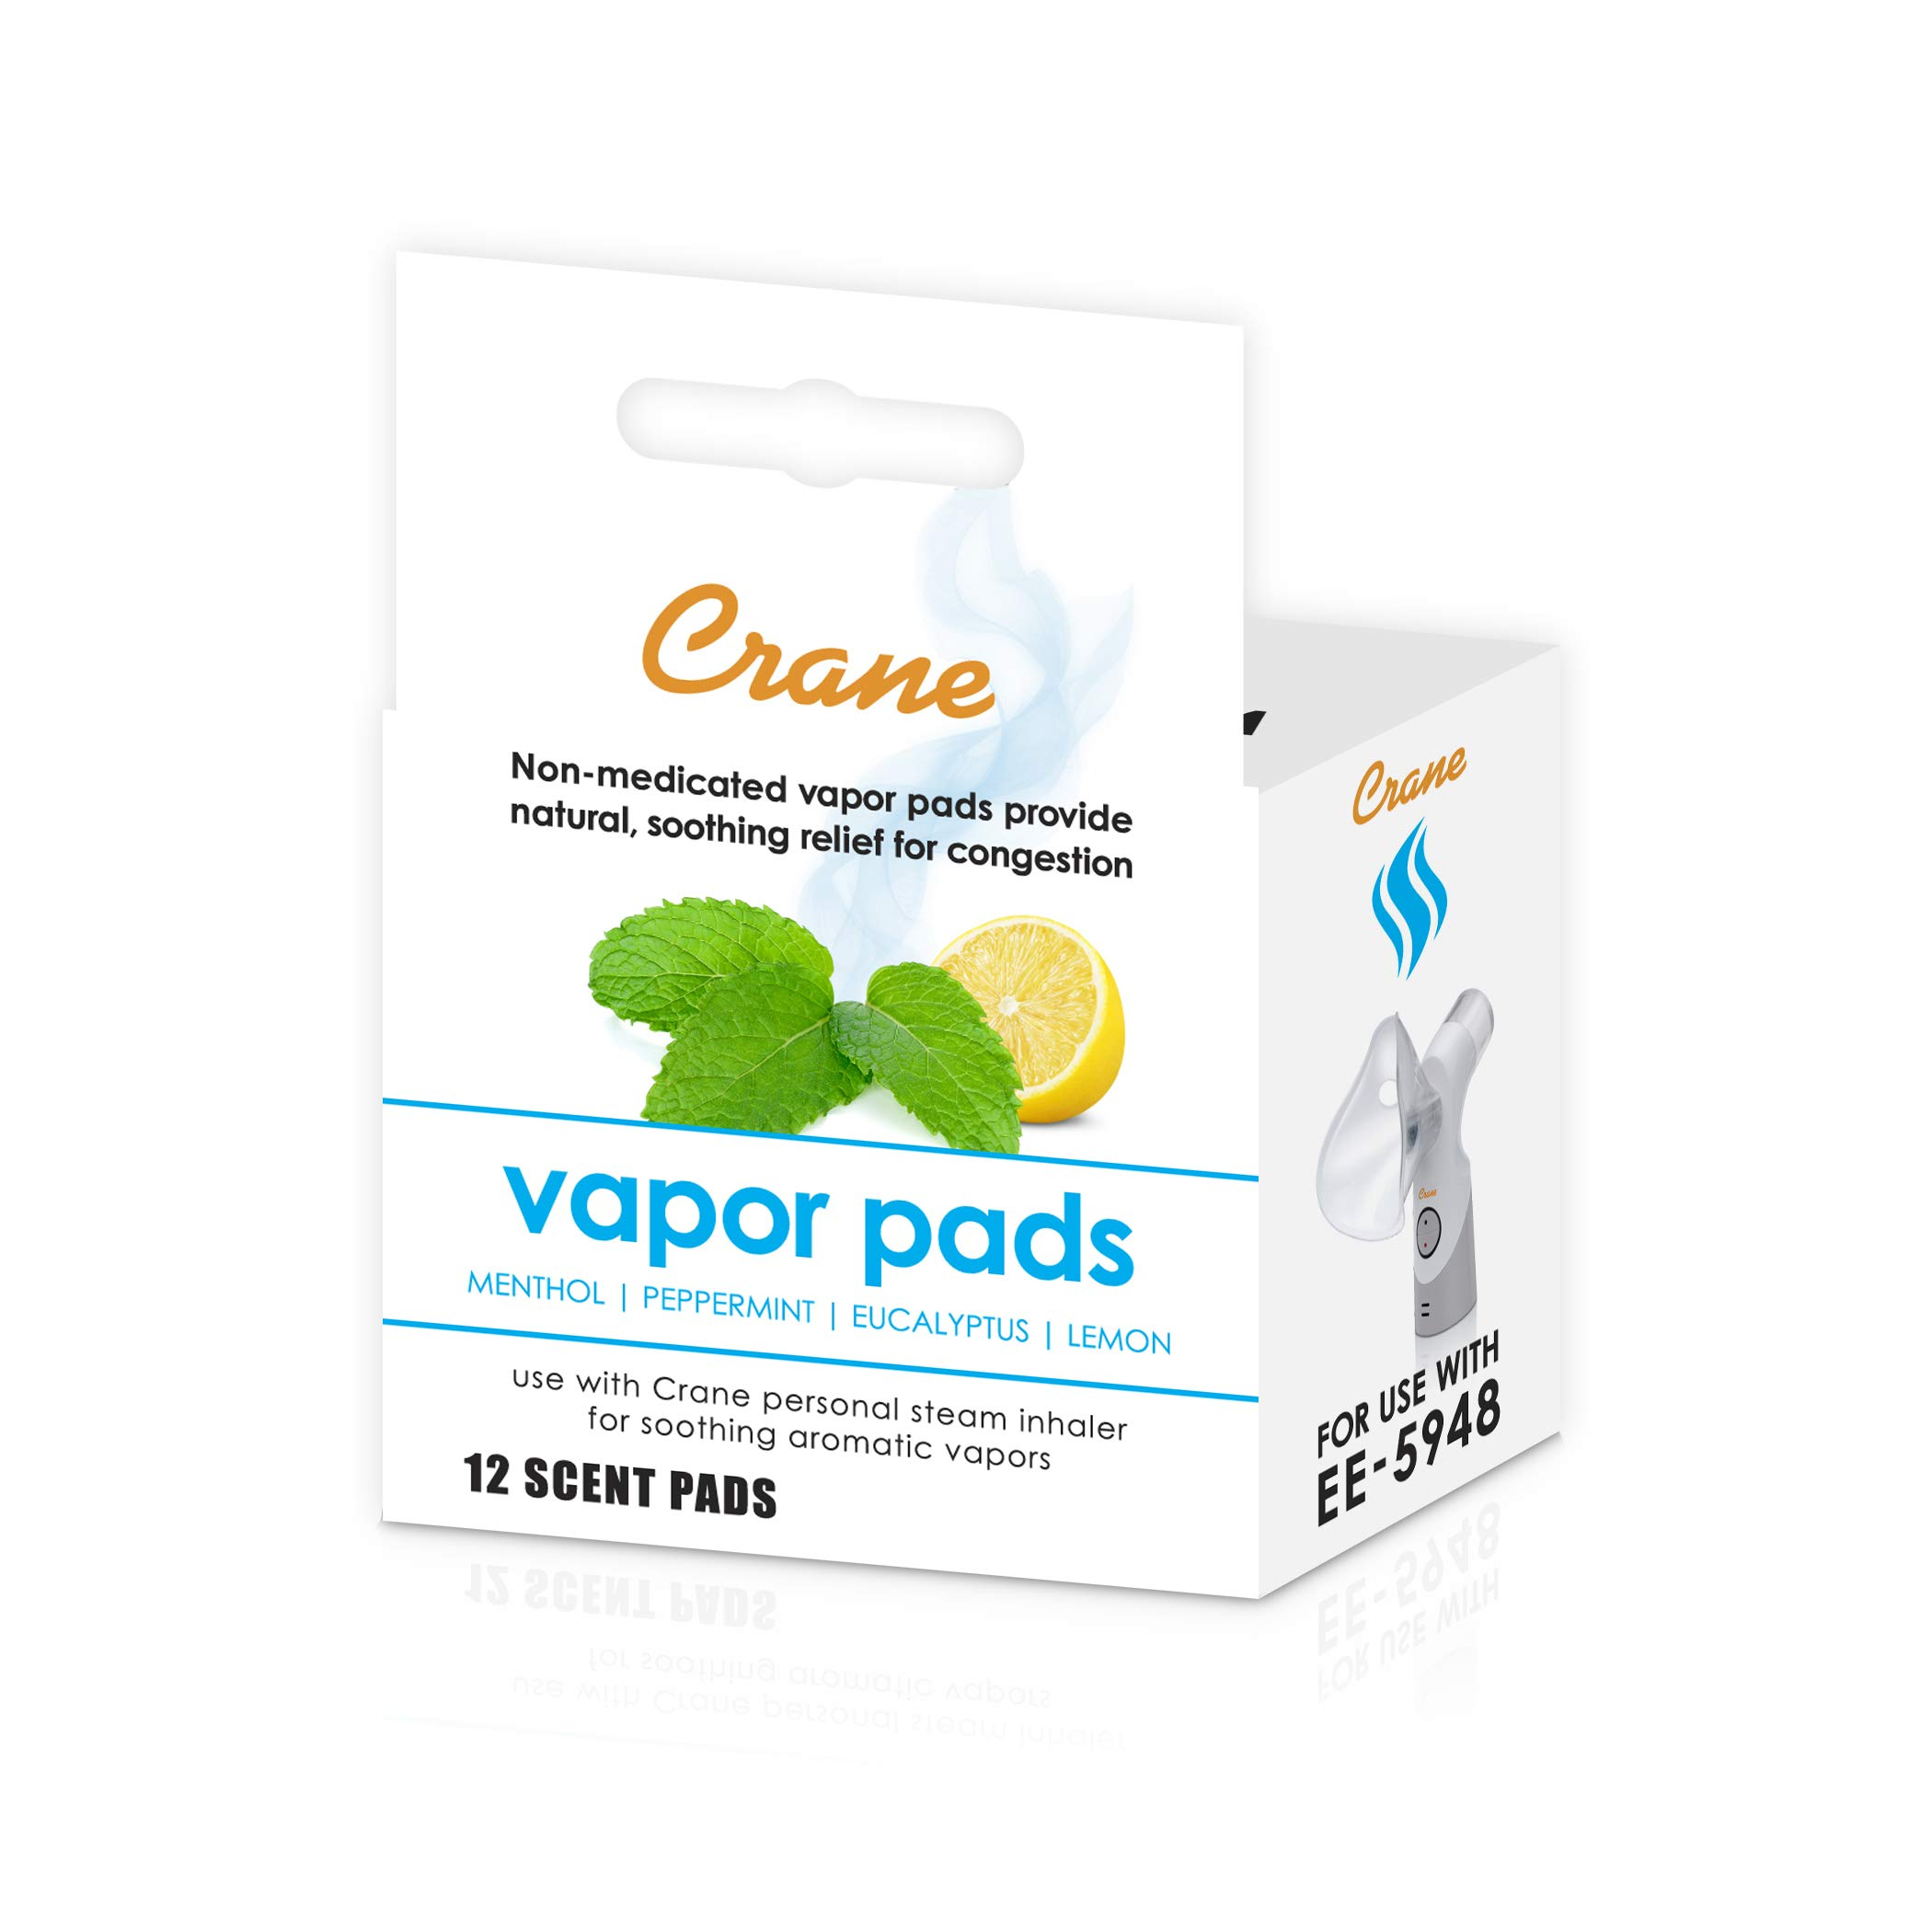 Crane Vapor Pads for EE-5948 Cordless Personal Steam Inhaler, 12 pack, White